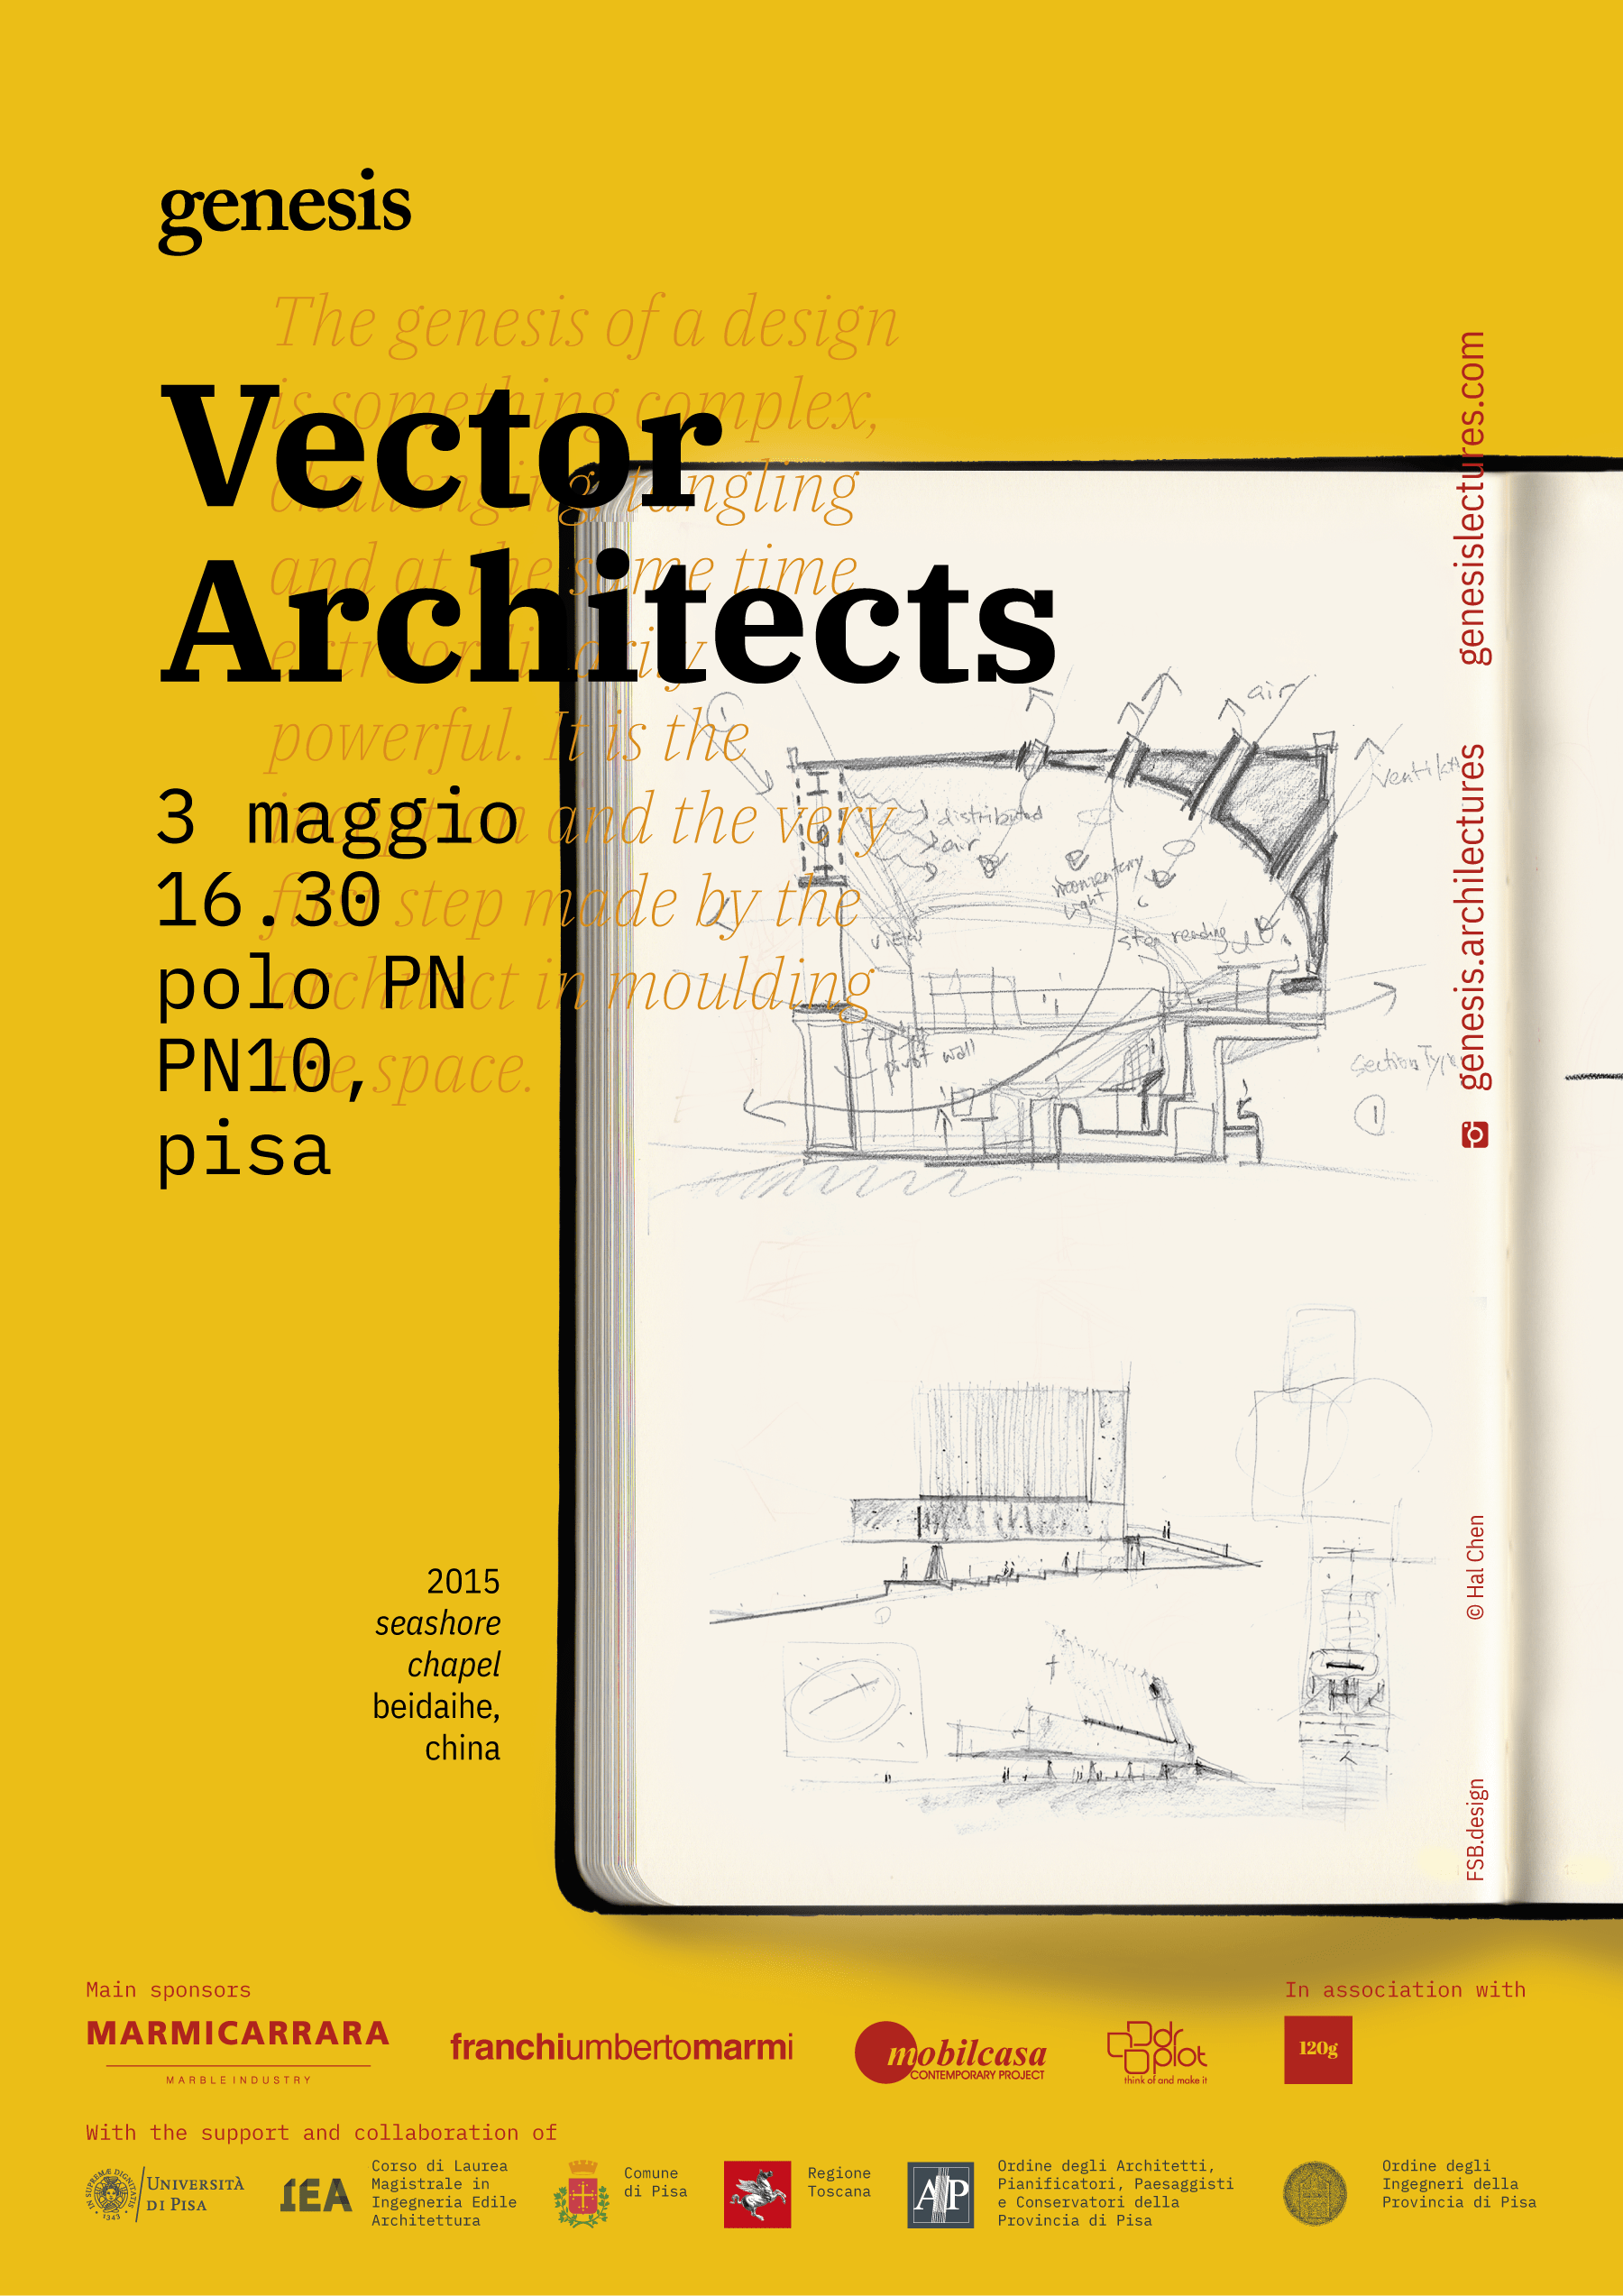 Vector Architects at Genesis Lectures 2019